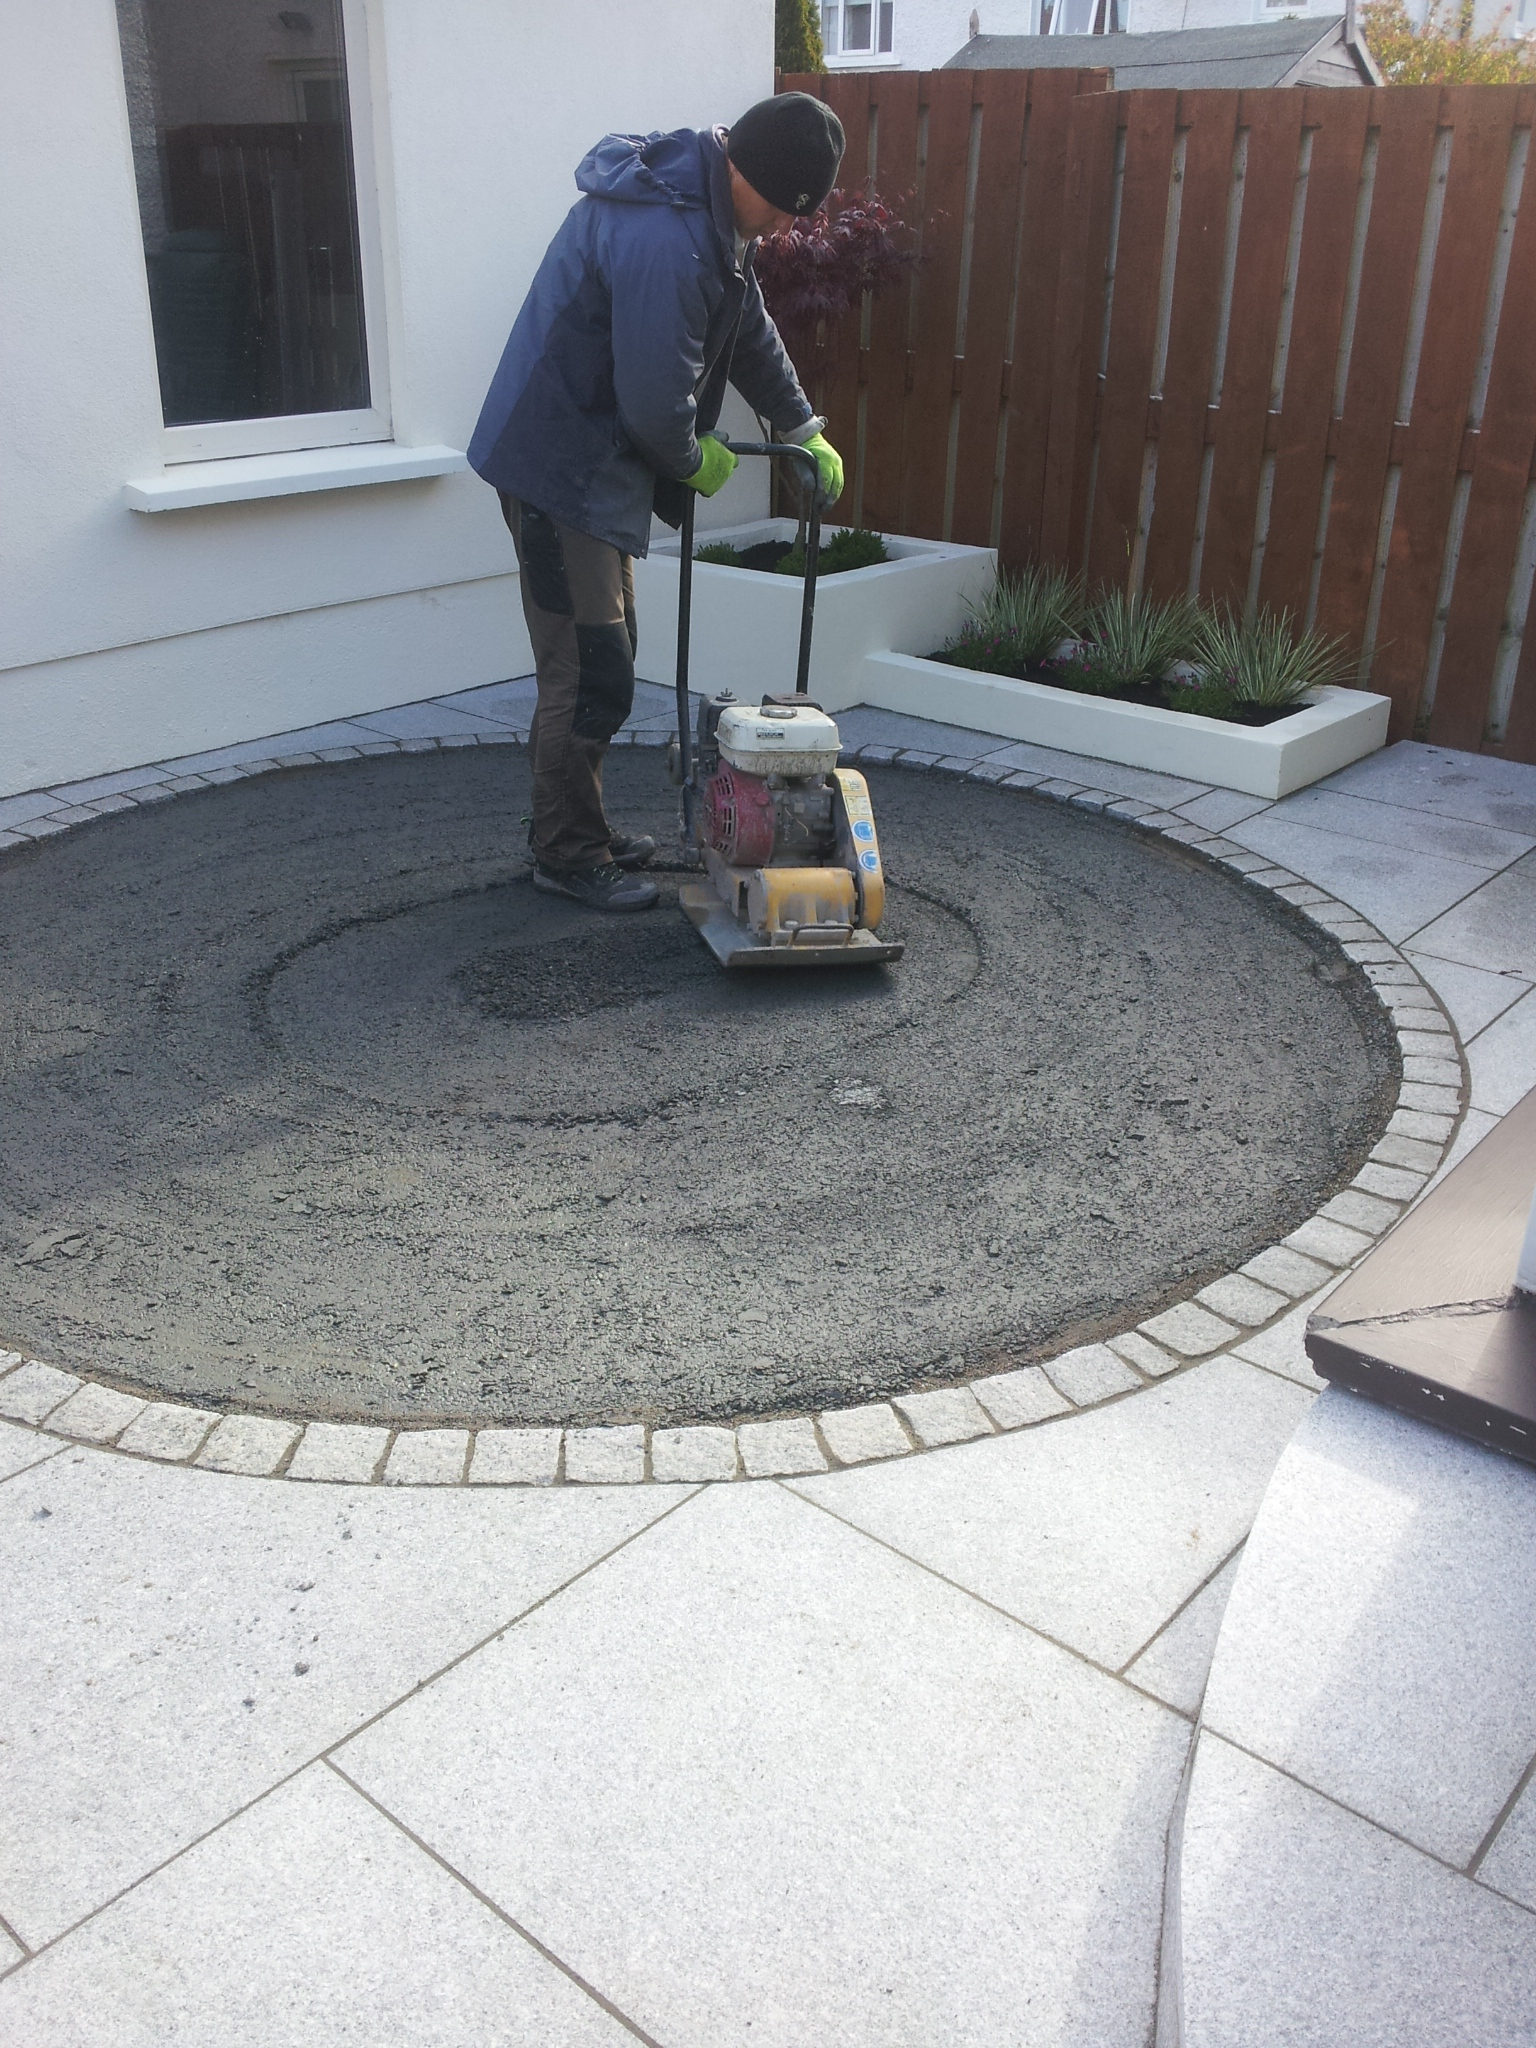 installer compacting base material for grass